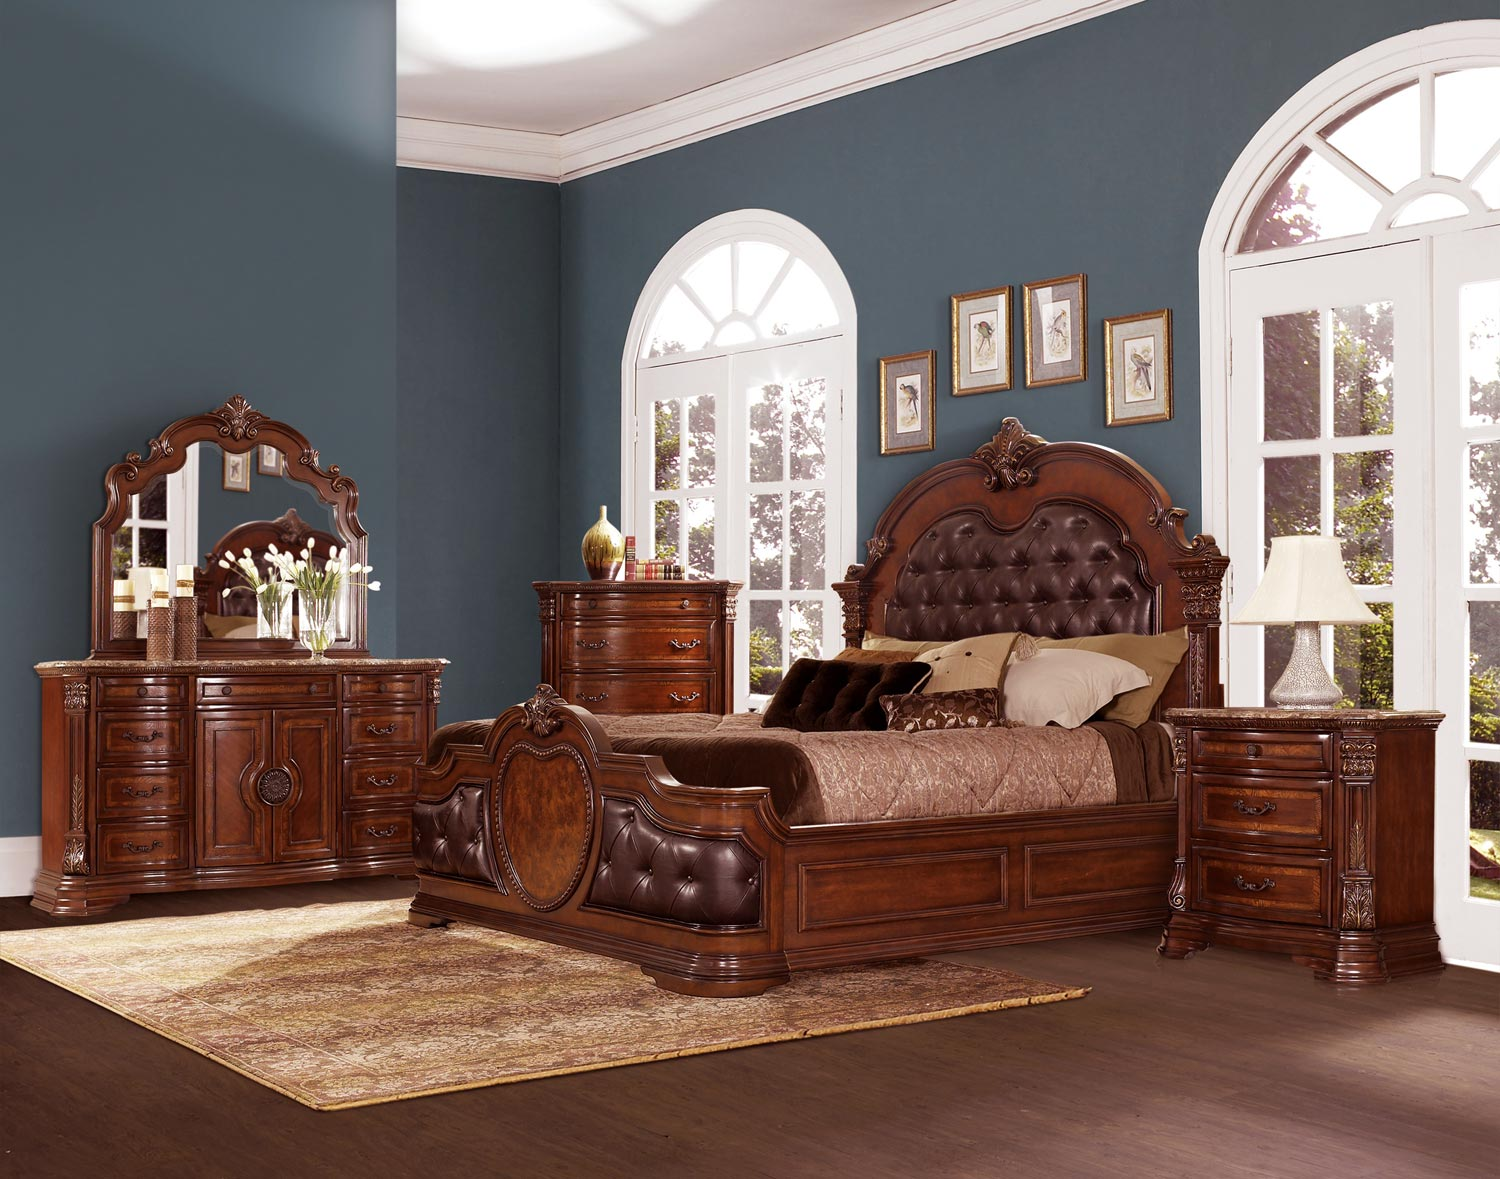 traditional bedroom set. Antoinetta Upholstered Bedroom Set  Warm Cherry Furniture Traditional Contemporary